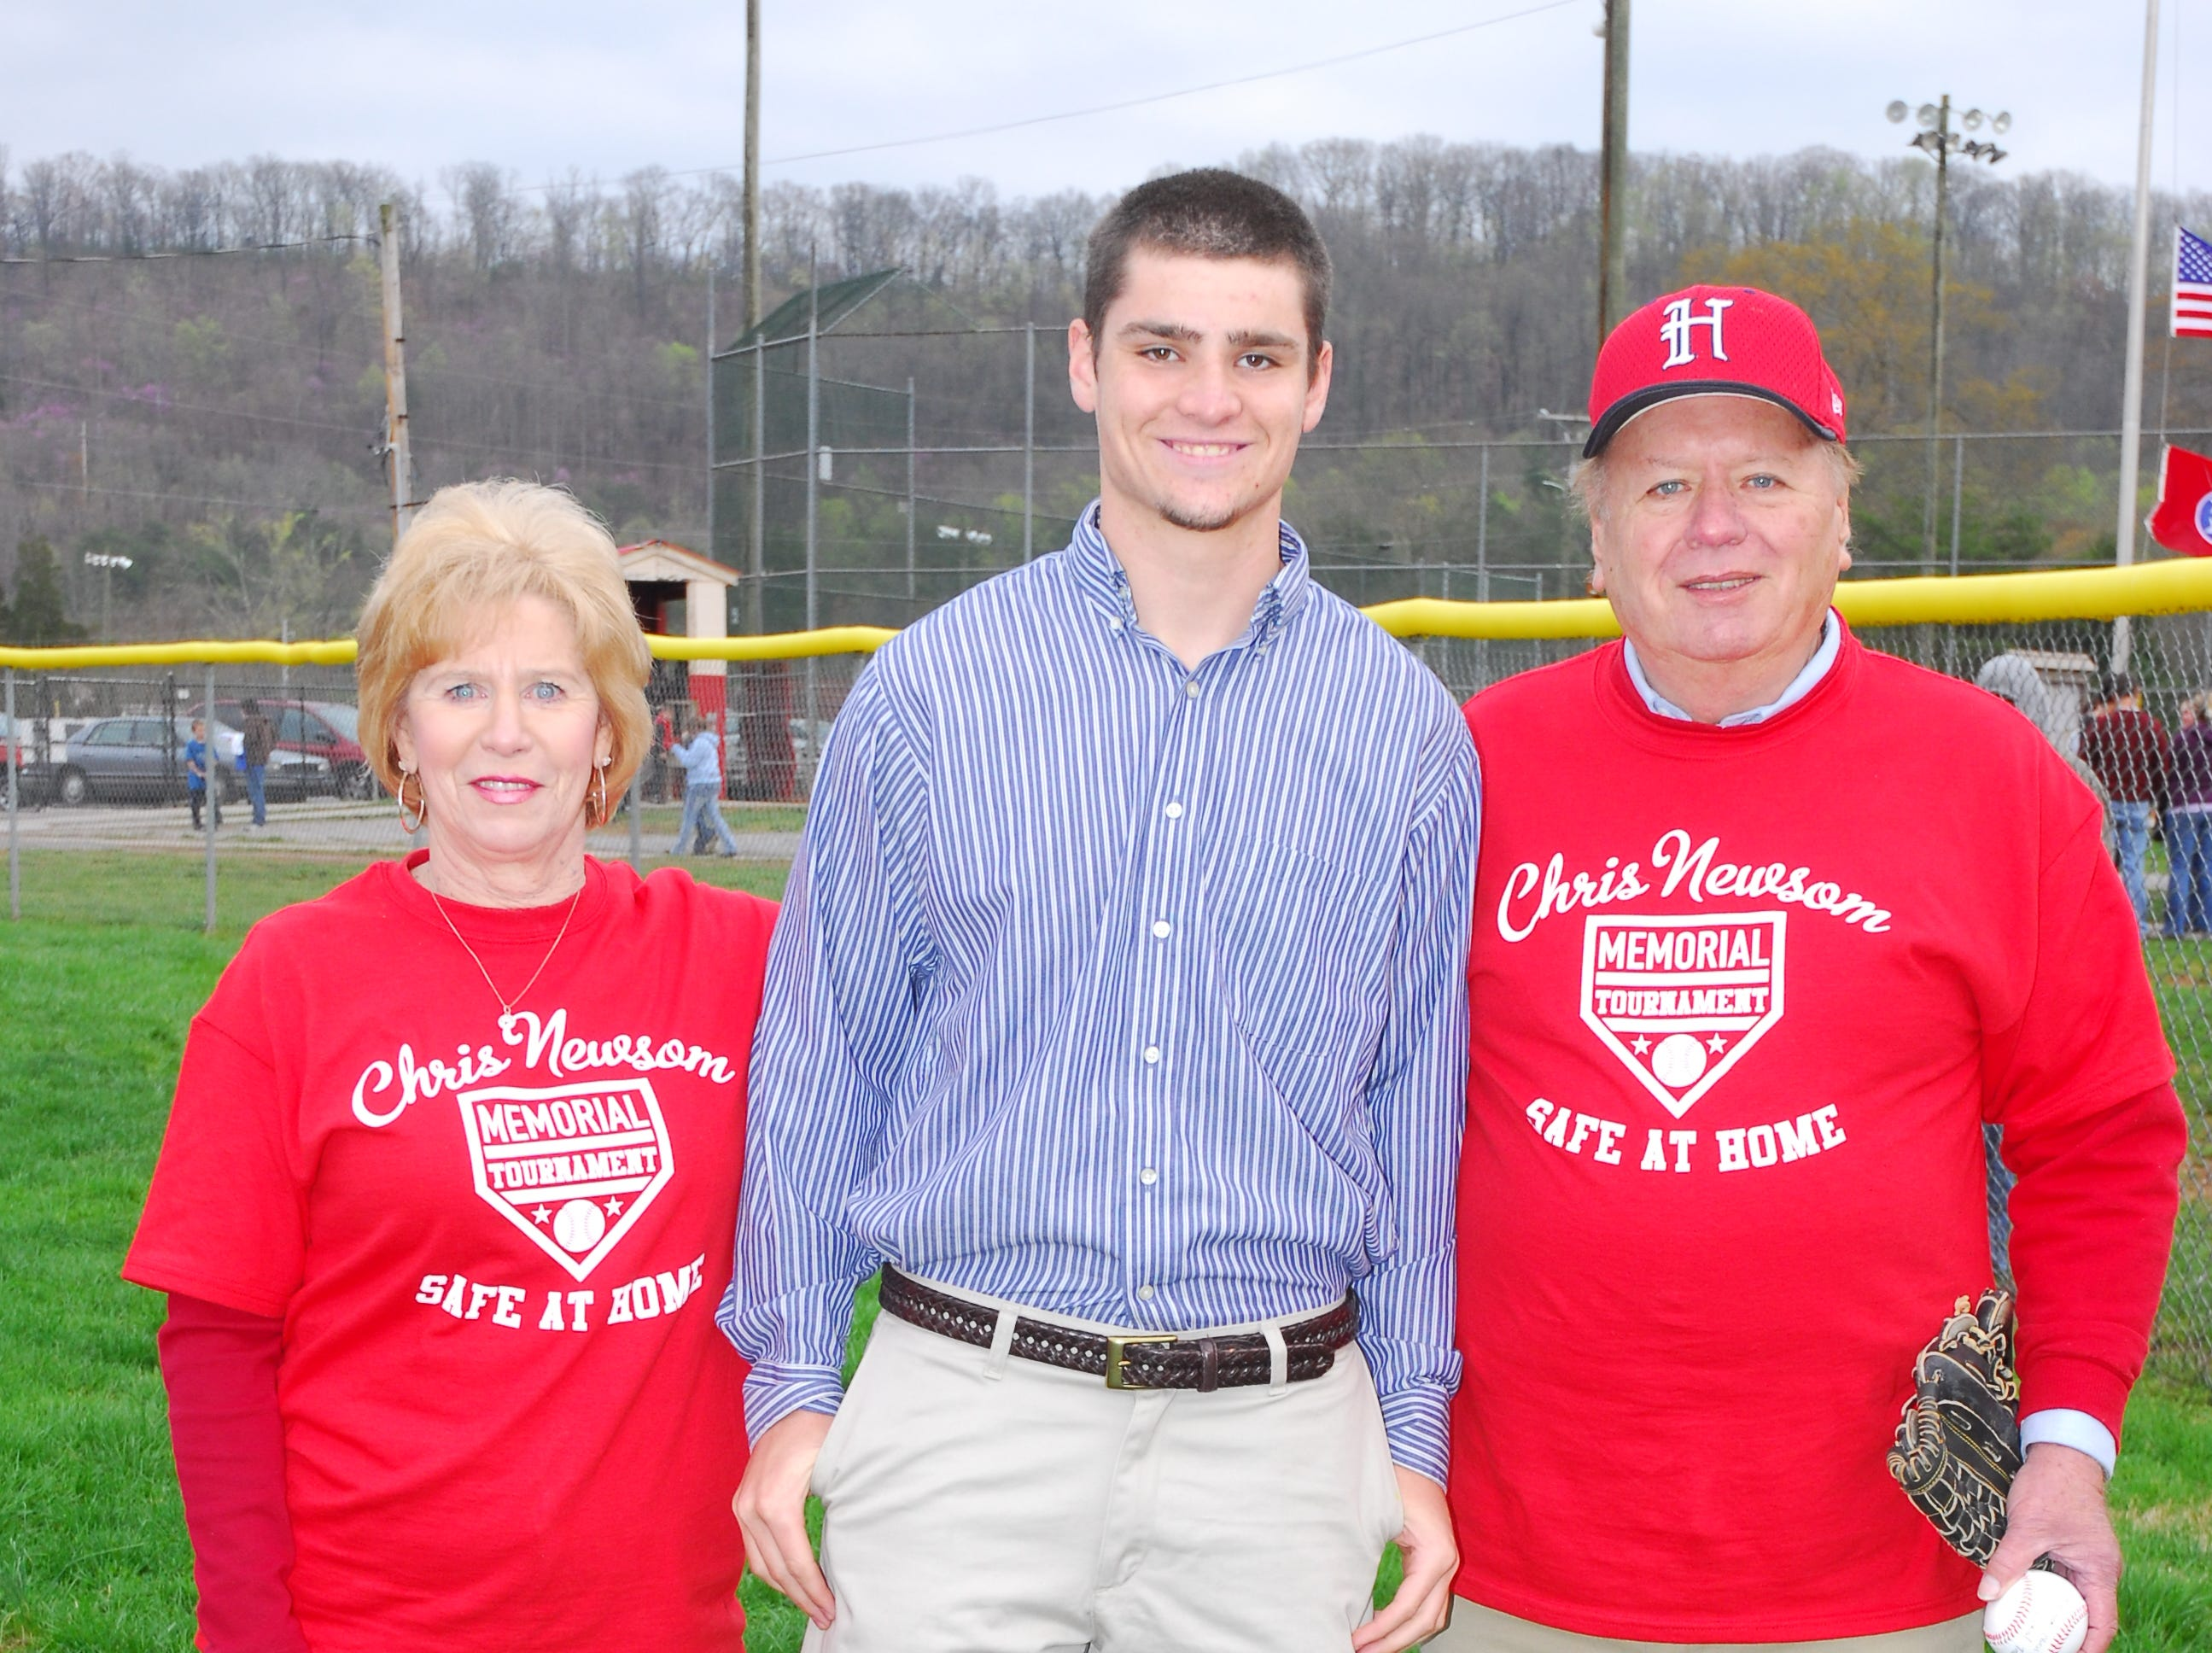 Taylor Babcock, center, was the first recipient of the Chris Newsom scholarship in 2009. He is pictured with Mary and Hugh Newsom during the opening ceremonies of the 2011 tournament.